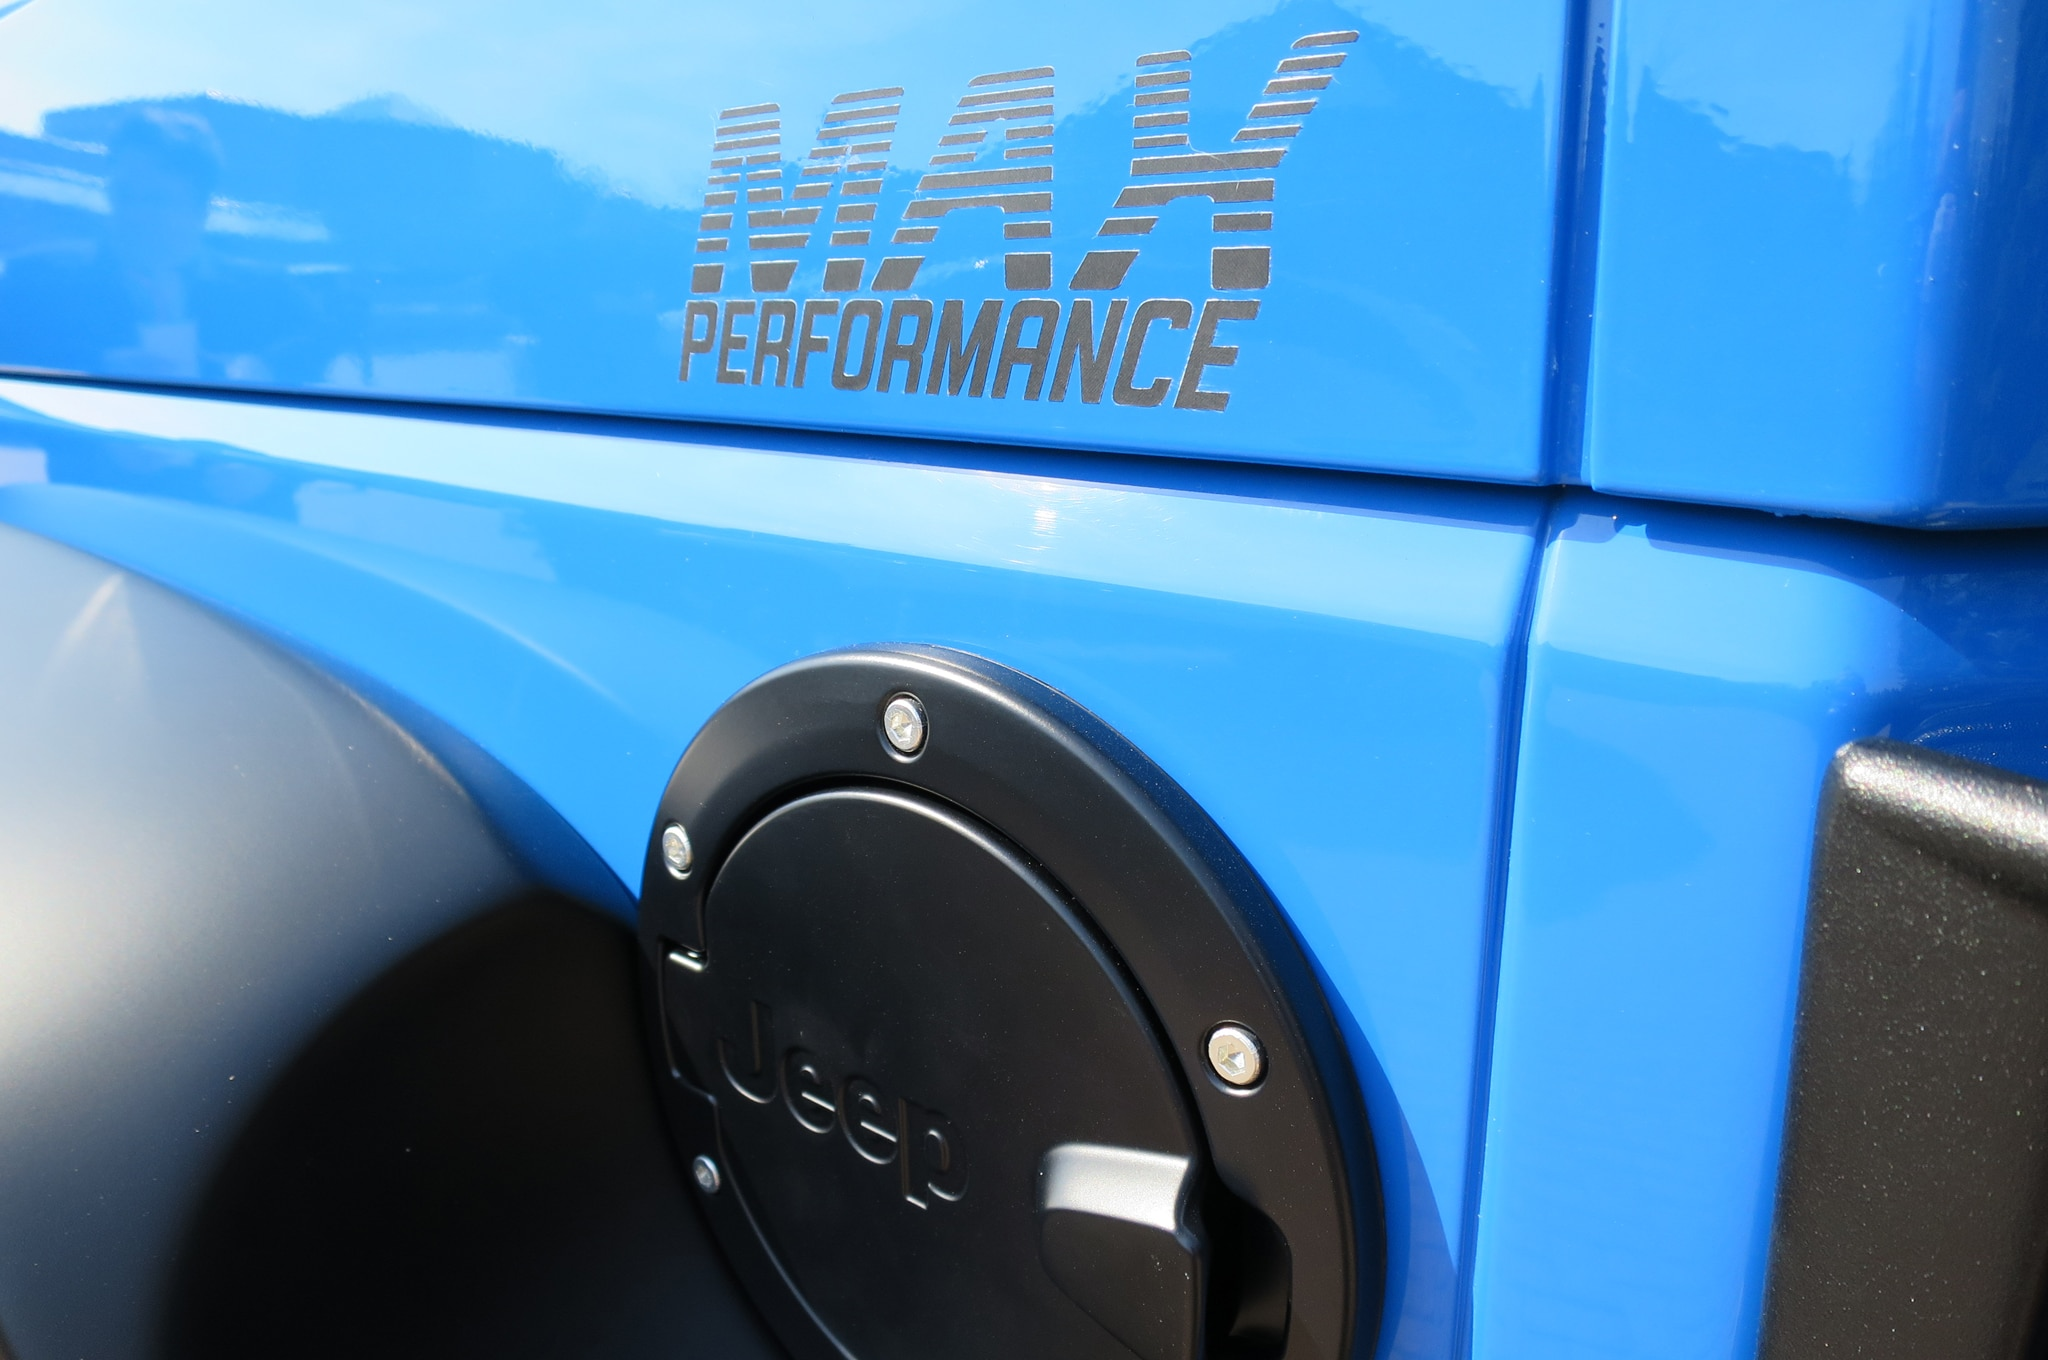 Jeep Wrangler Maximum Performance Concept fuel cap